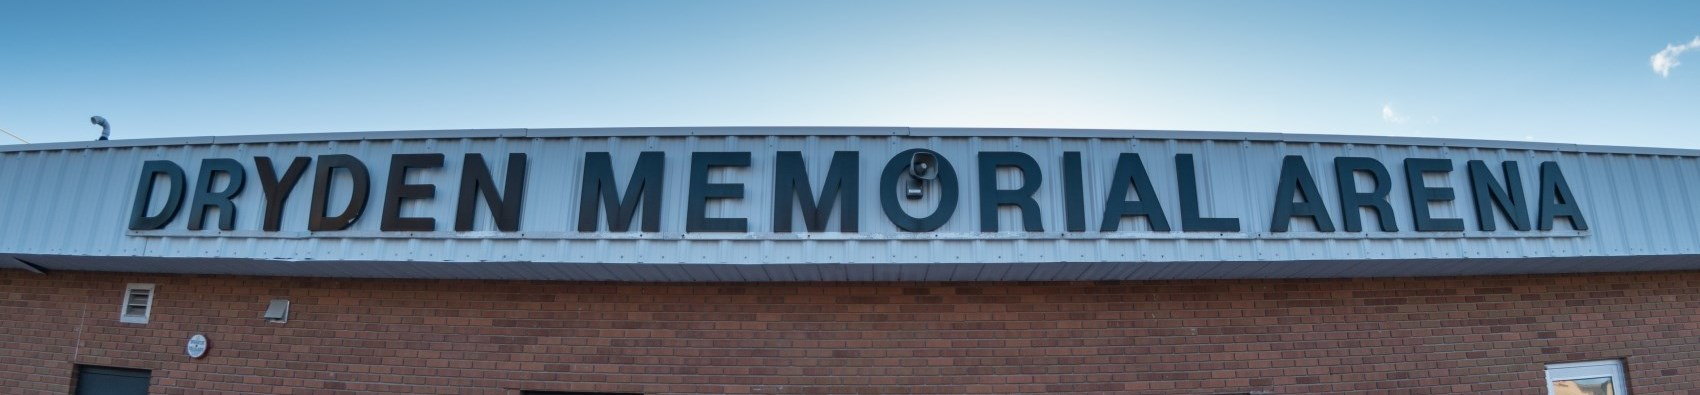 dryden memorial arena sign on building